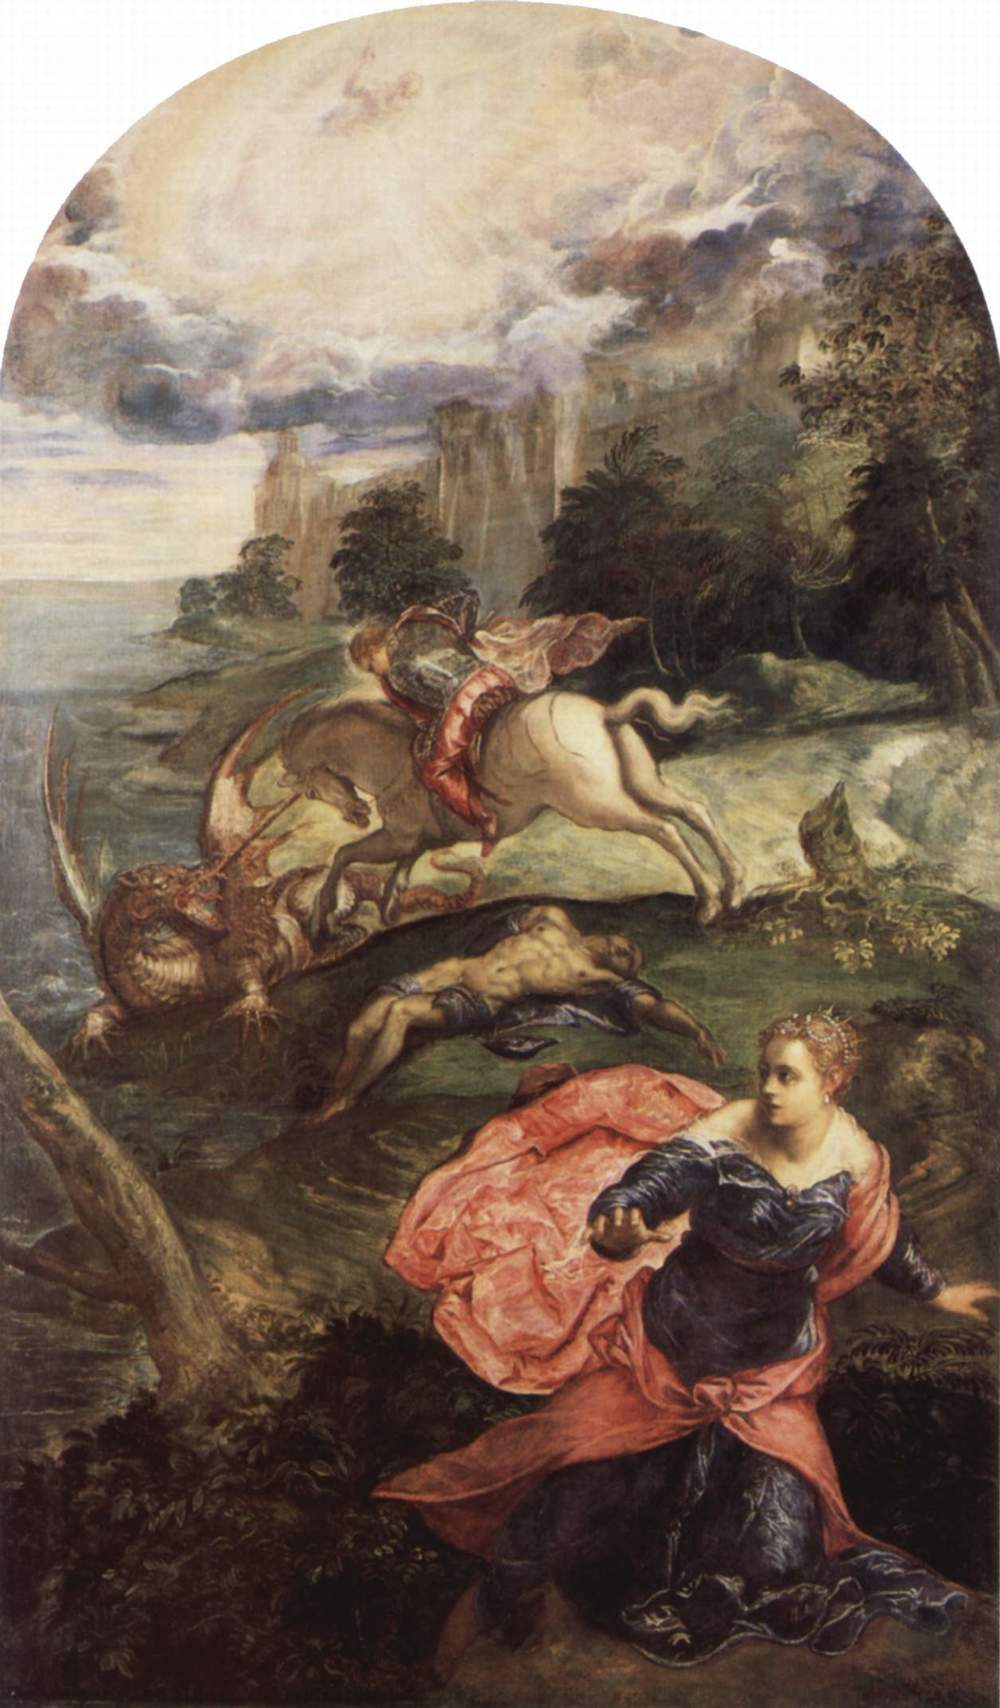 Tintoretto, Saint George and the Dragon, 1555 - 1558, National Gallery, London.